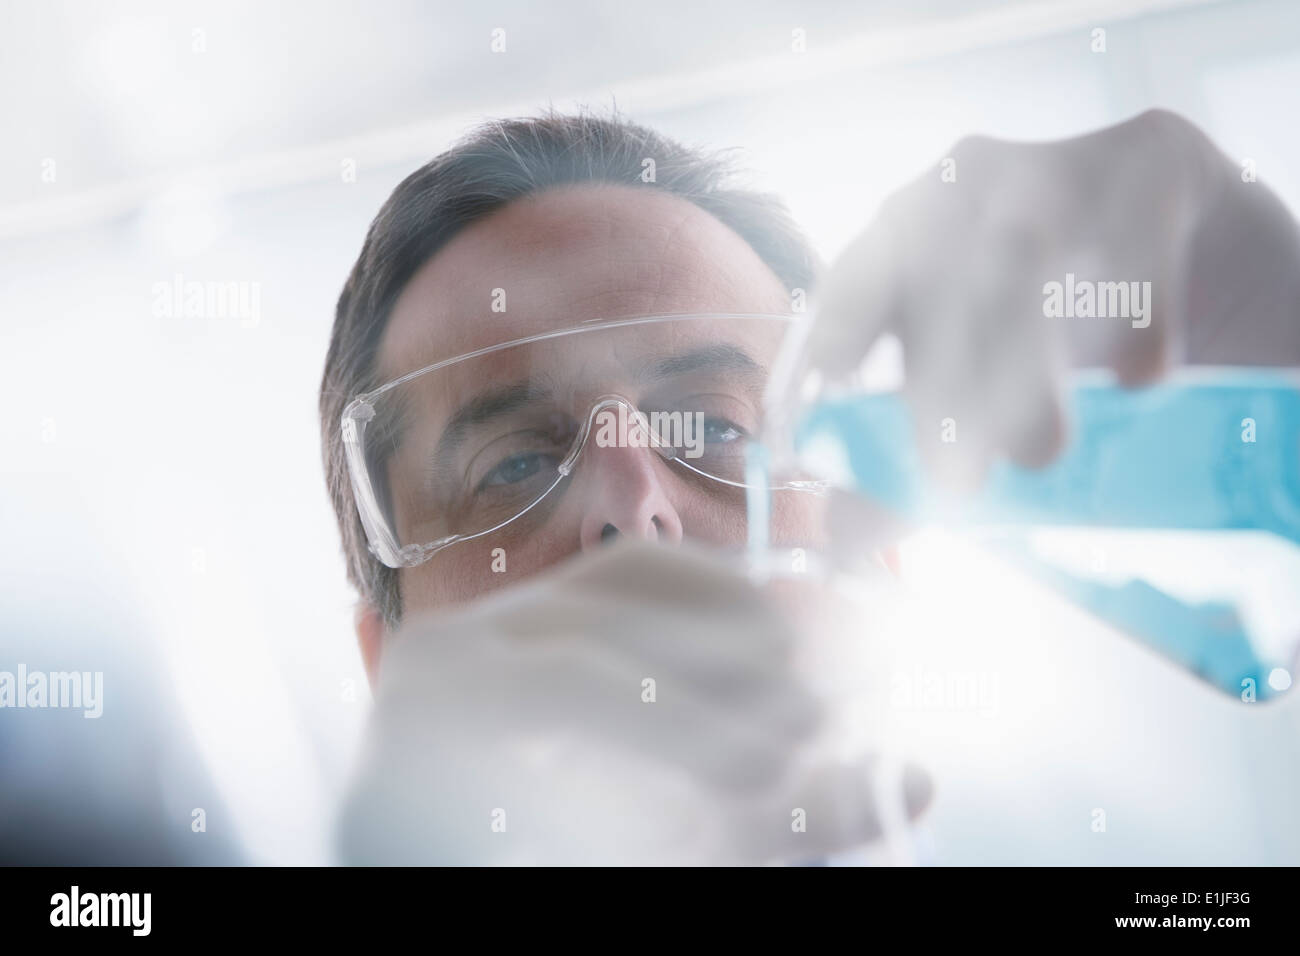 Scientist pouring liquid into test tube - Stock Image